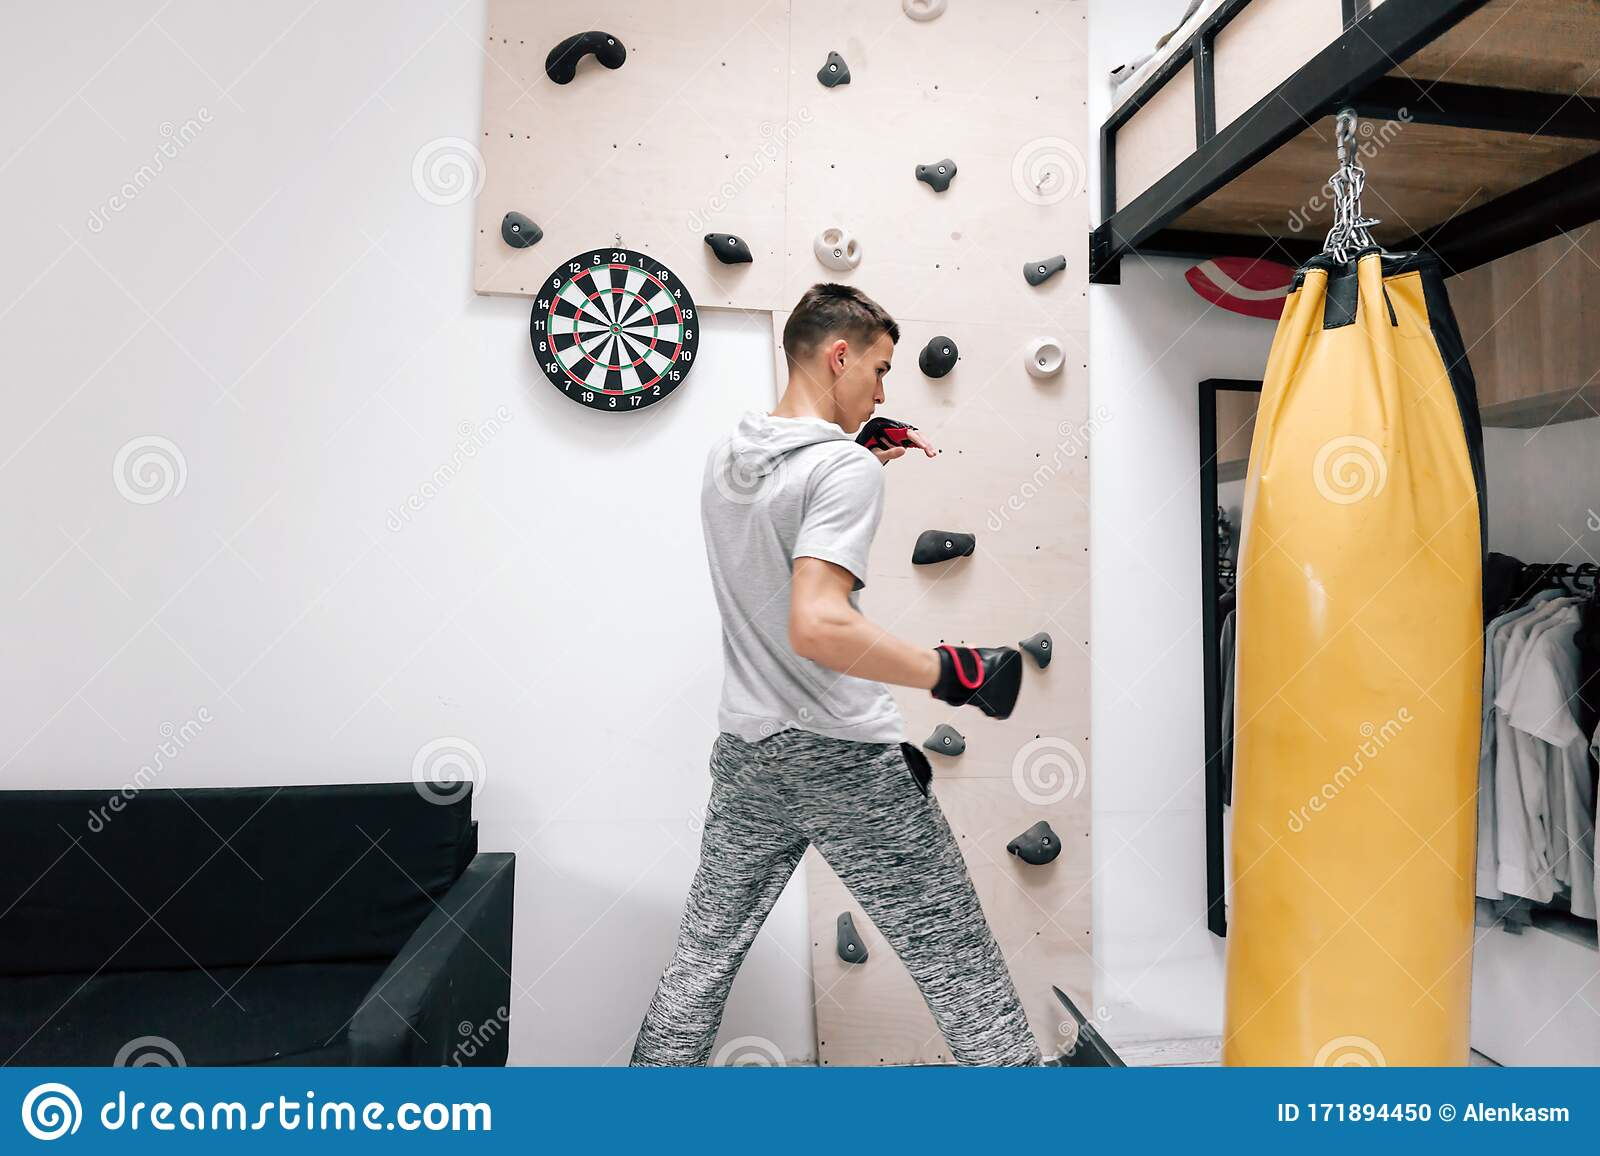 16 17 Years Old Teenage Boy Workout With Boxing Bag In Home Gym